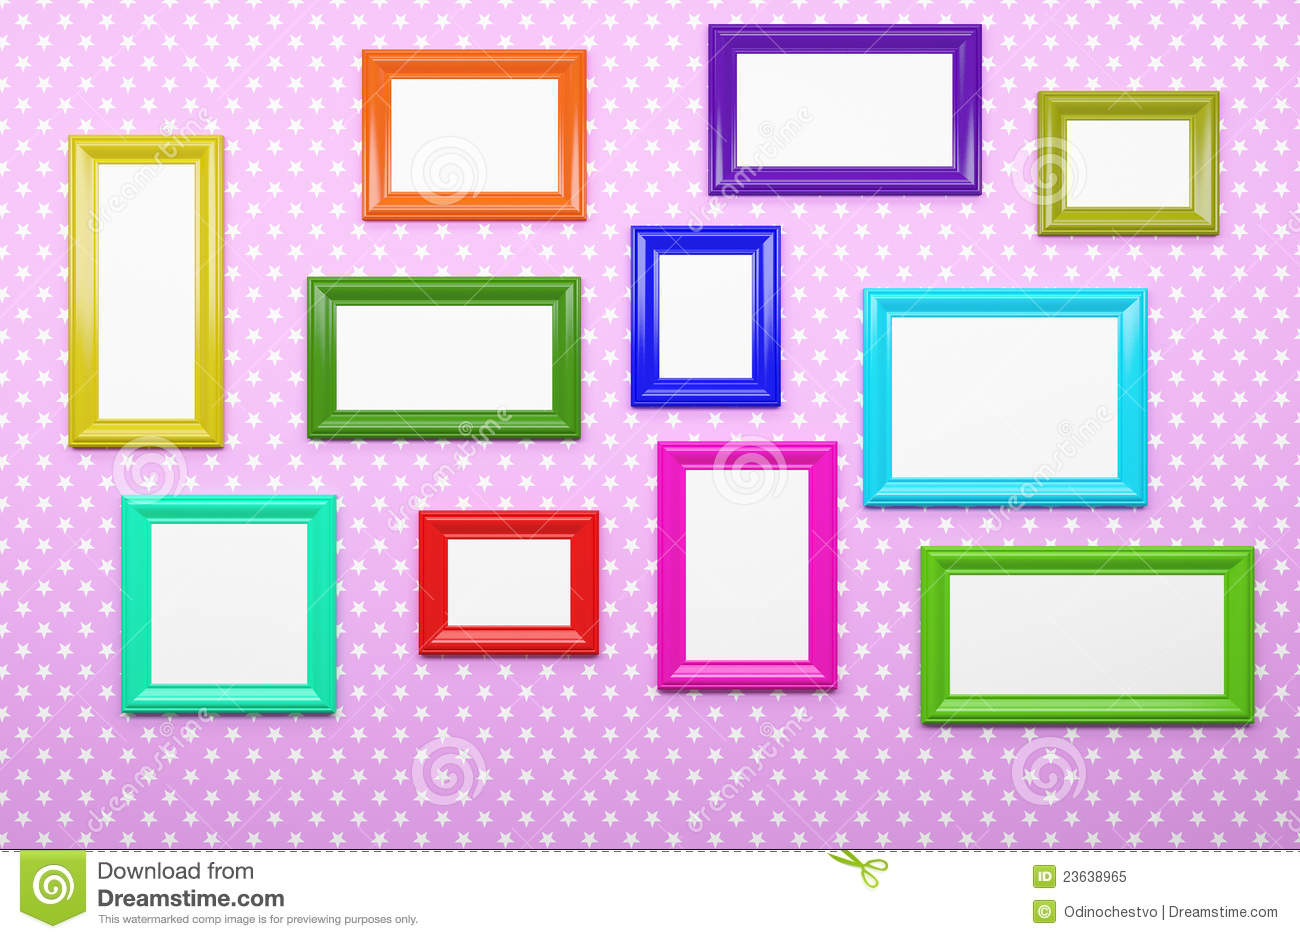 Modern Vibrant Colored Empty Frames Stock Illustrations – 8 Modern ...